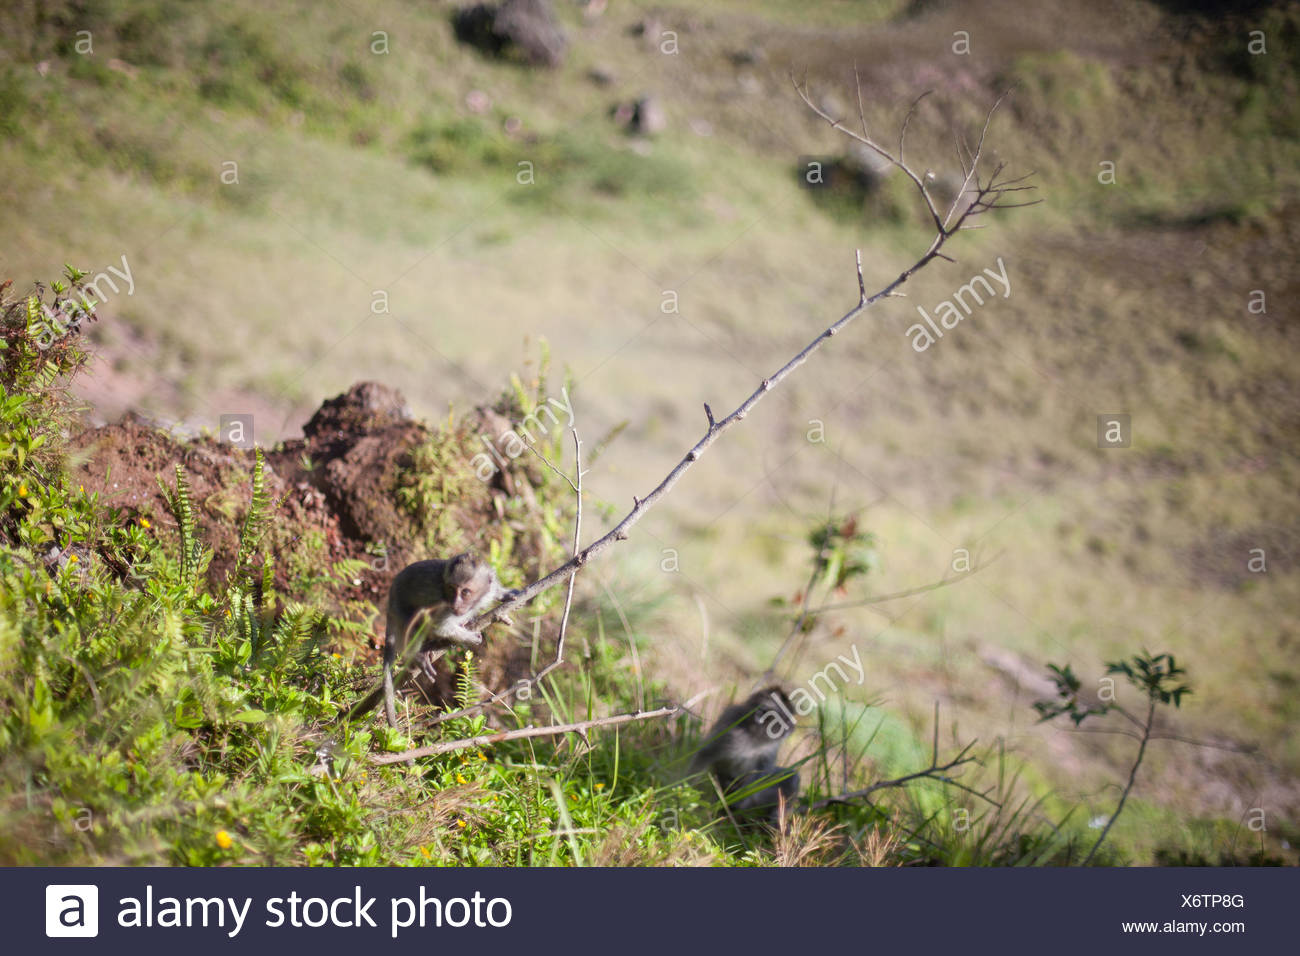 Two Young Monkeys On Landscape - Stock Image